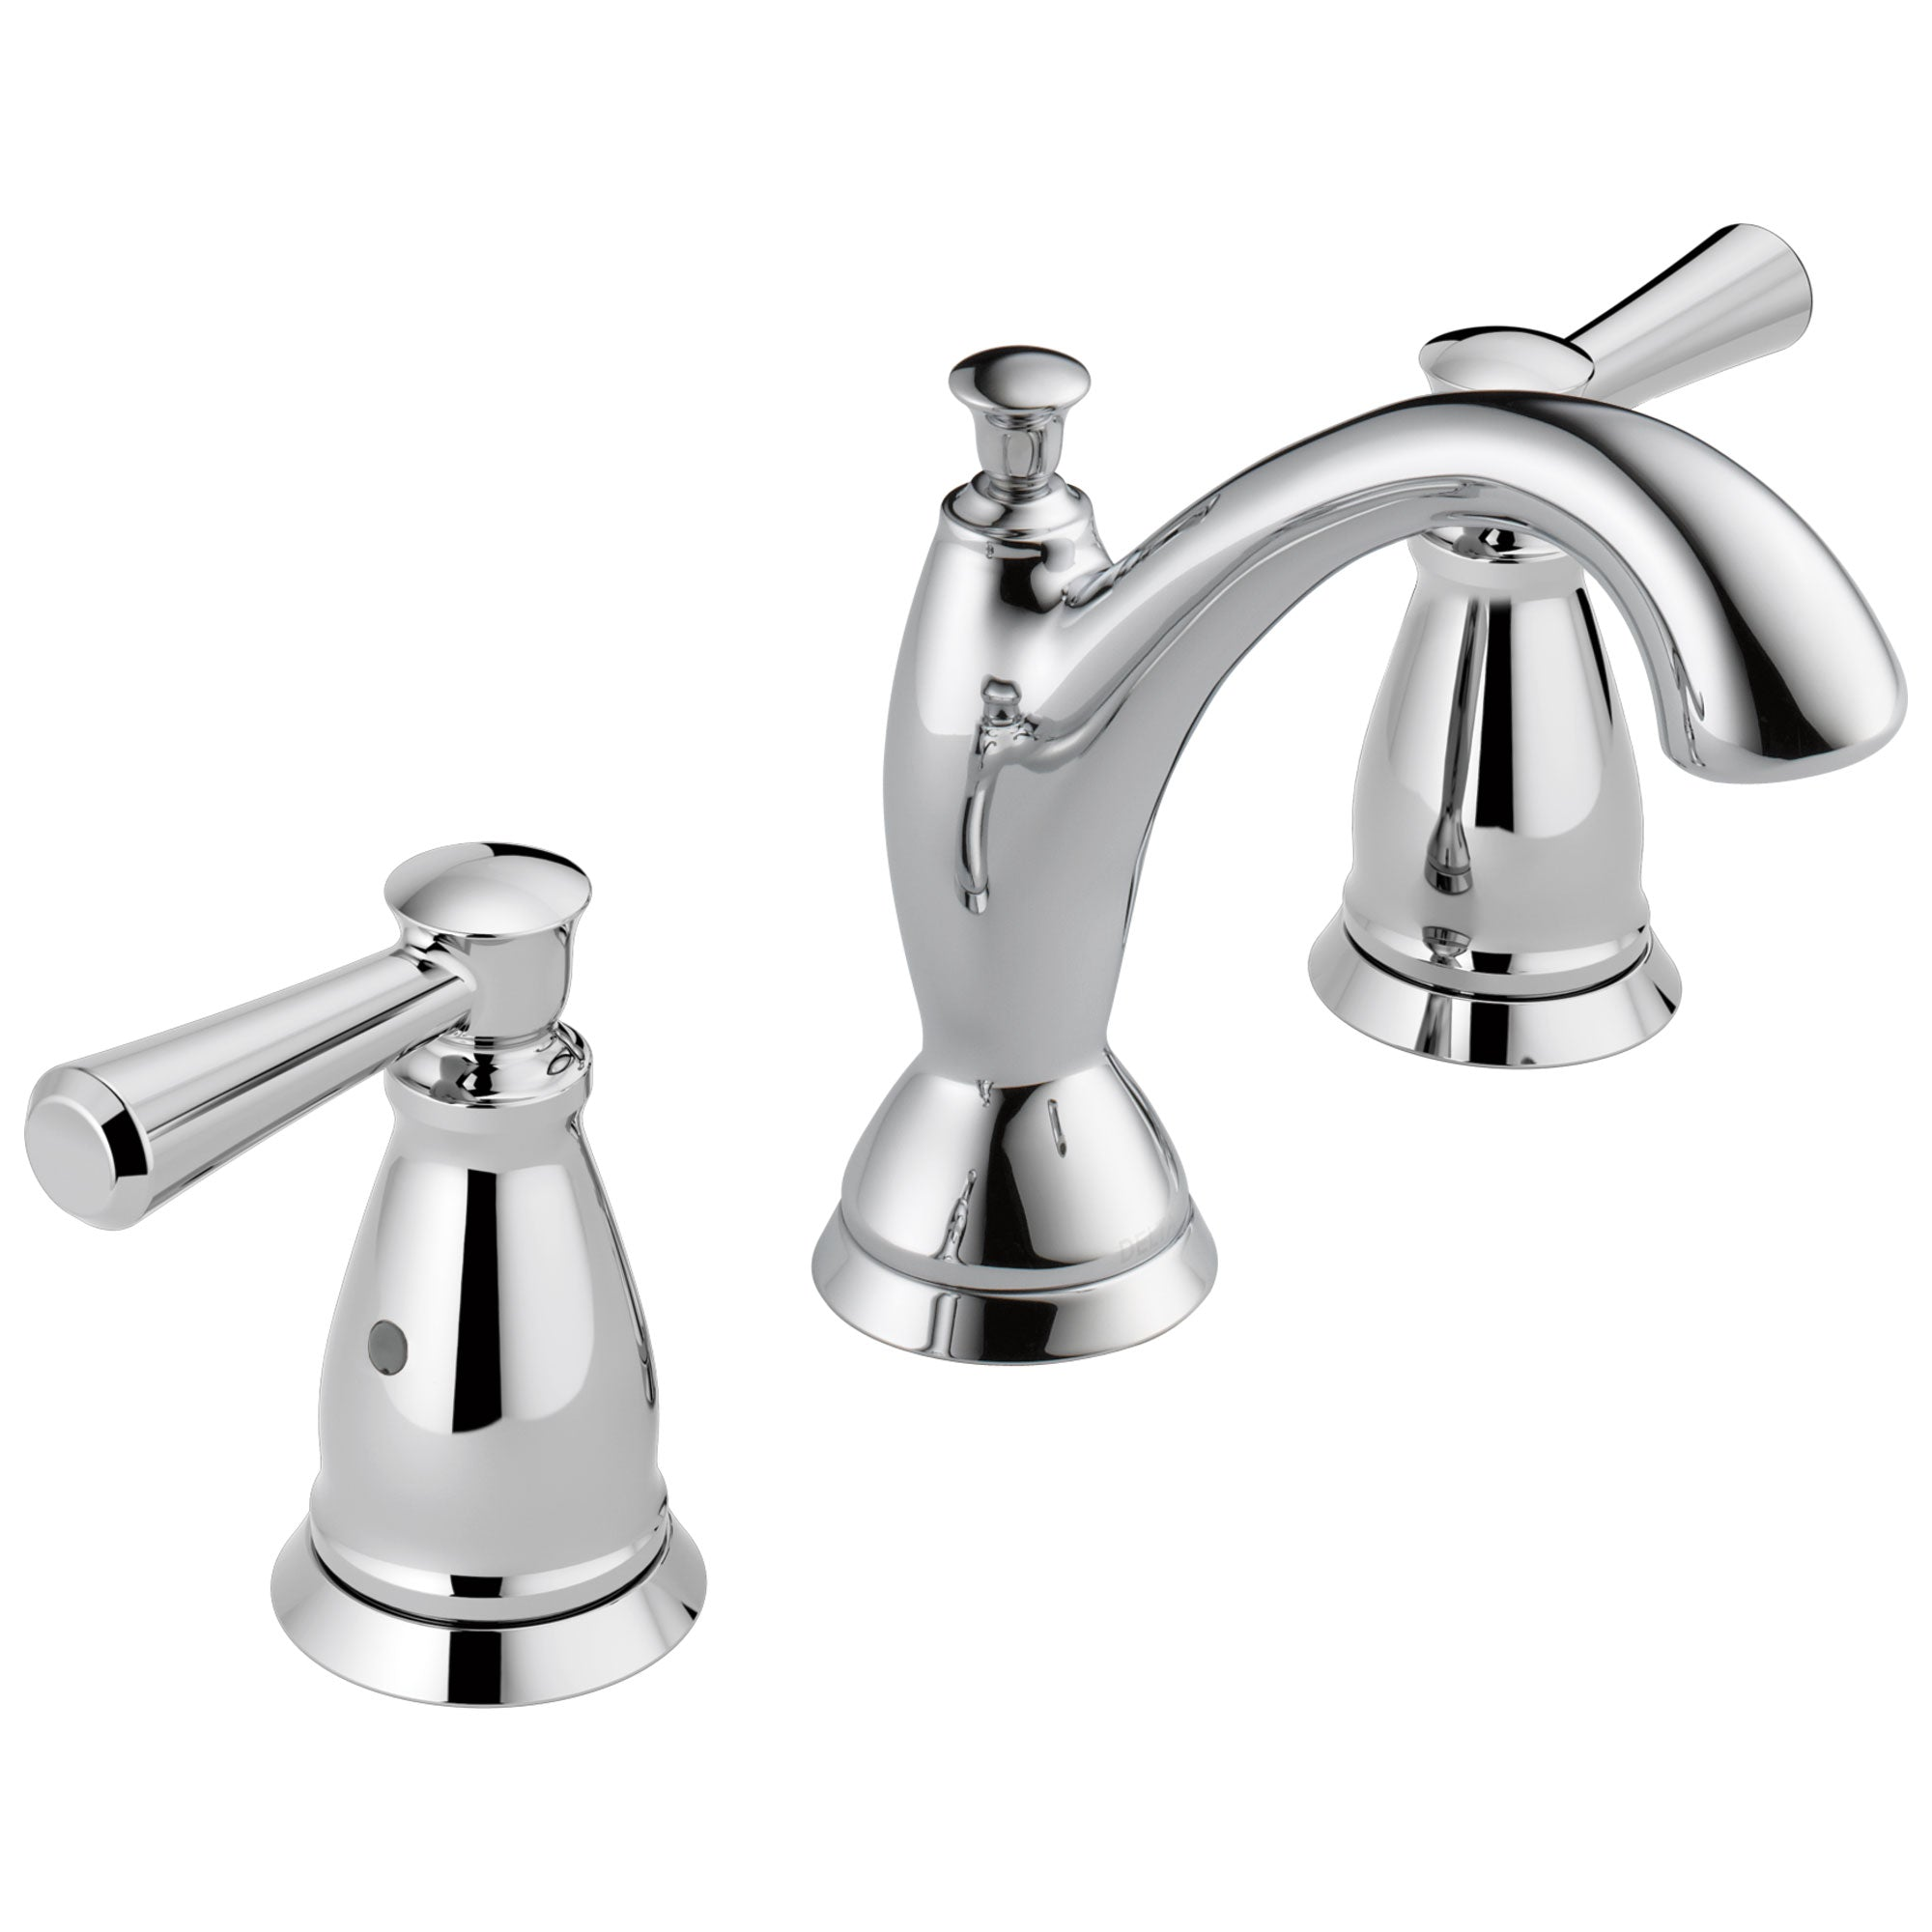 Delta Linden Collection Chrome Finish Two Handle Widespread Lavatory Bathroom Sink Faucet with Metal Pop-up Drain D3593MPUDST